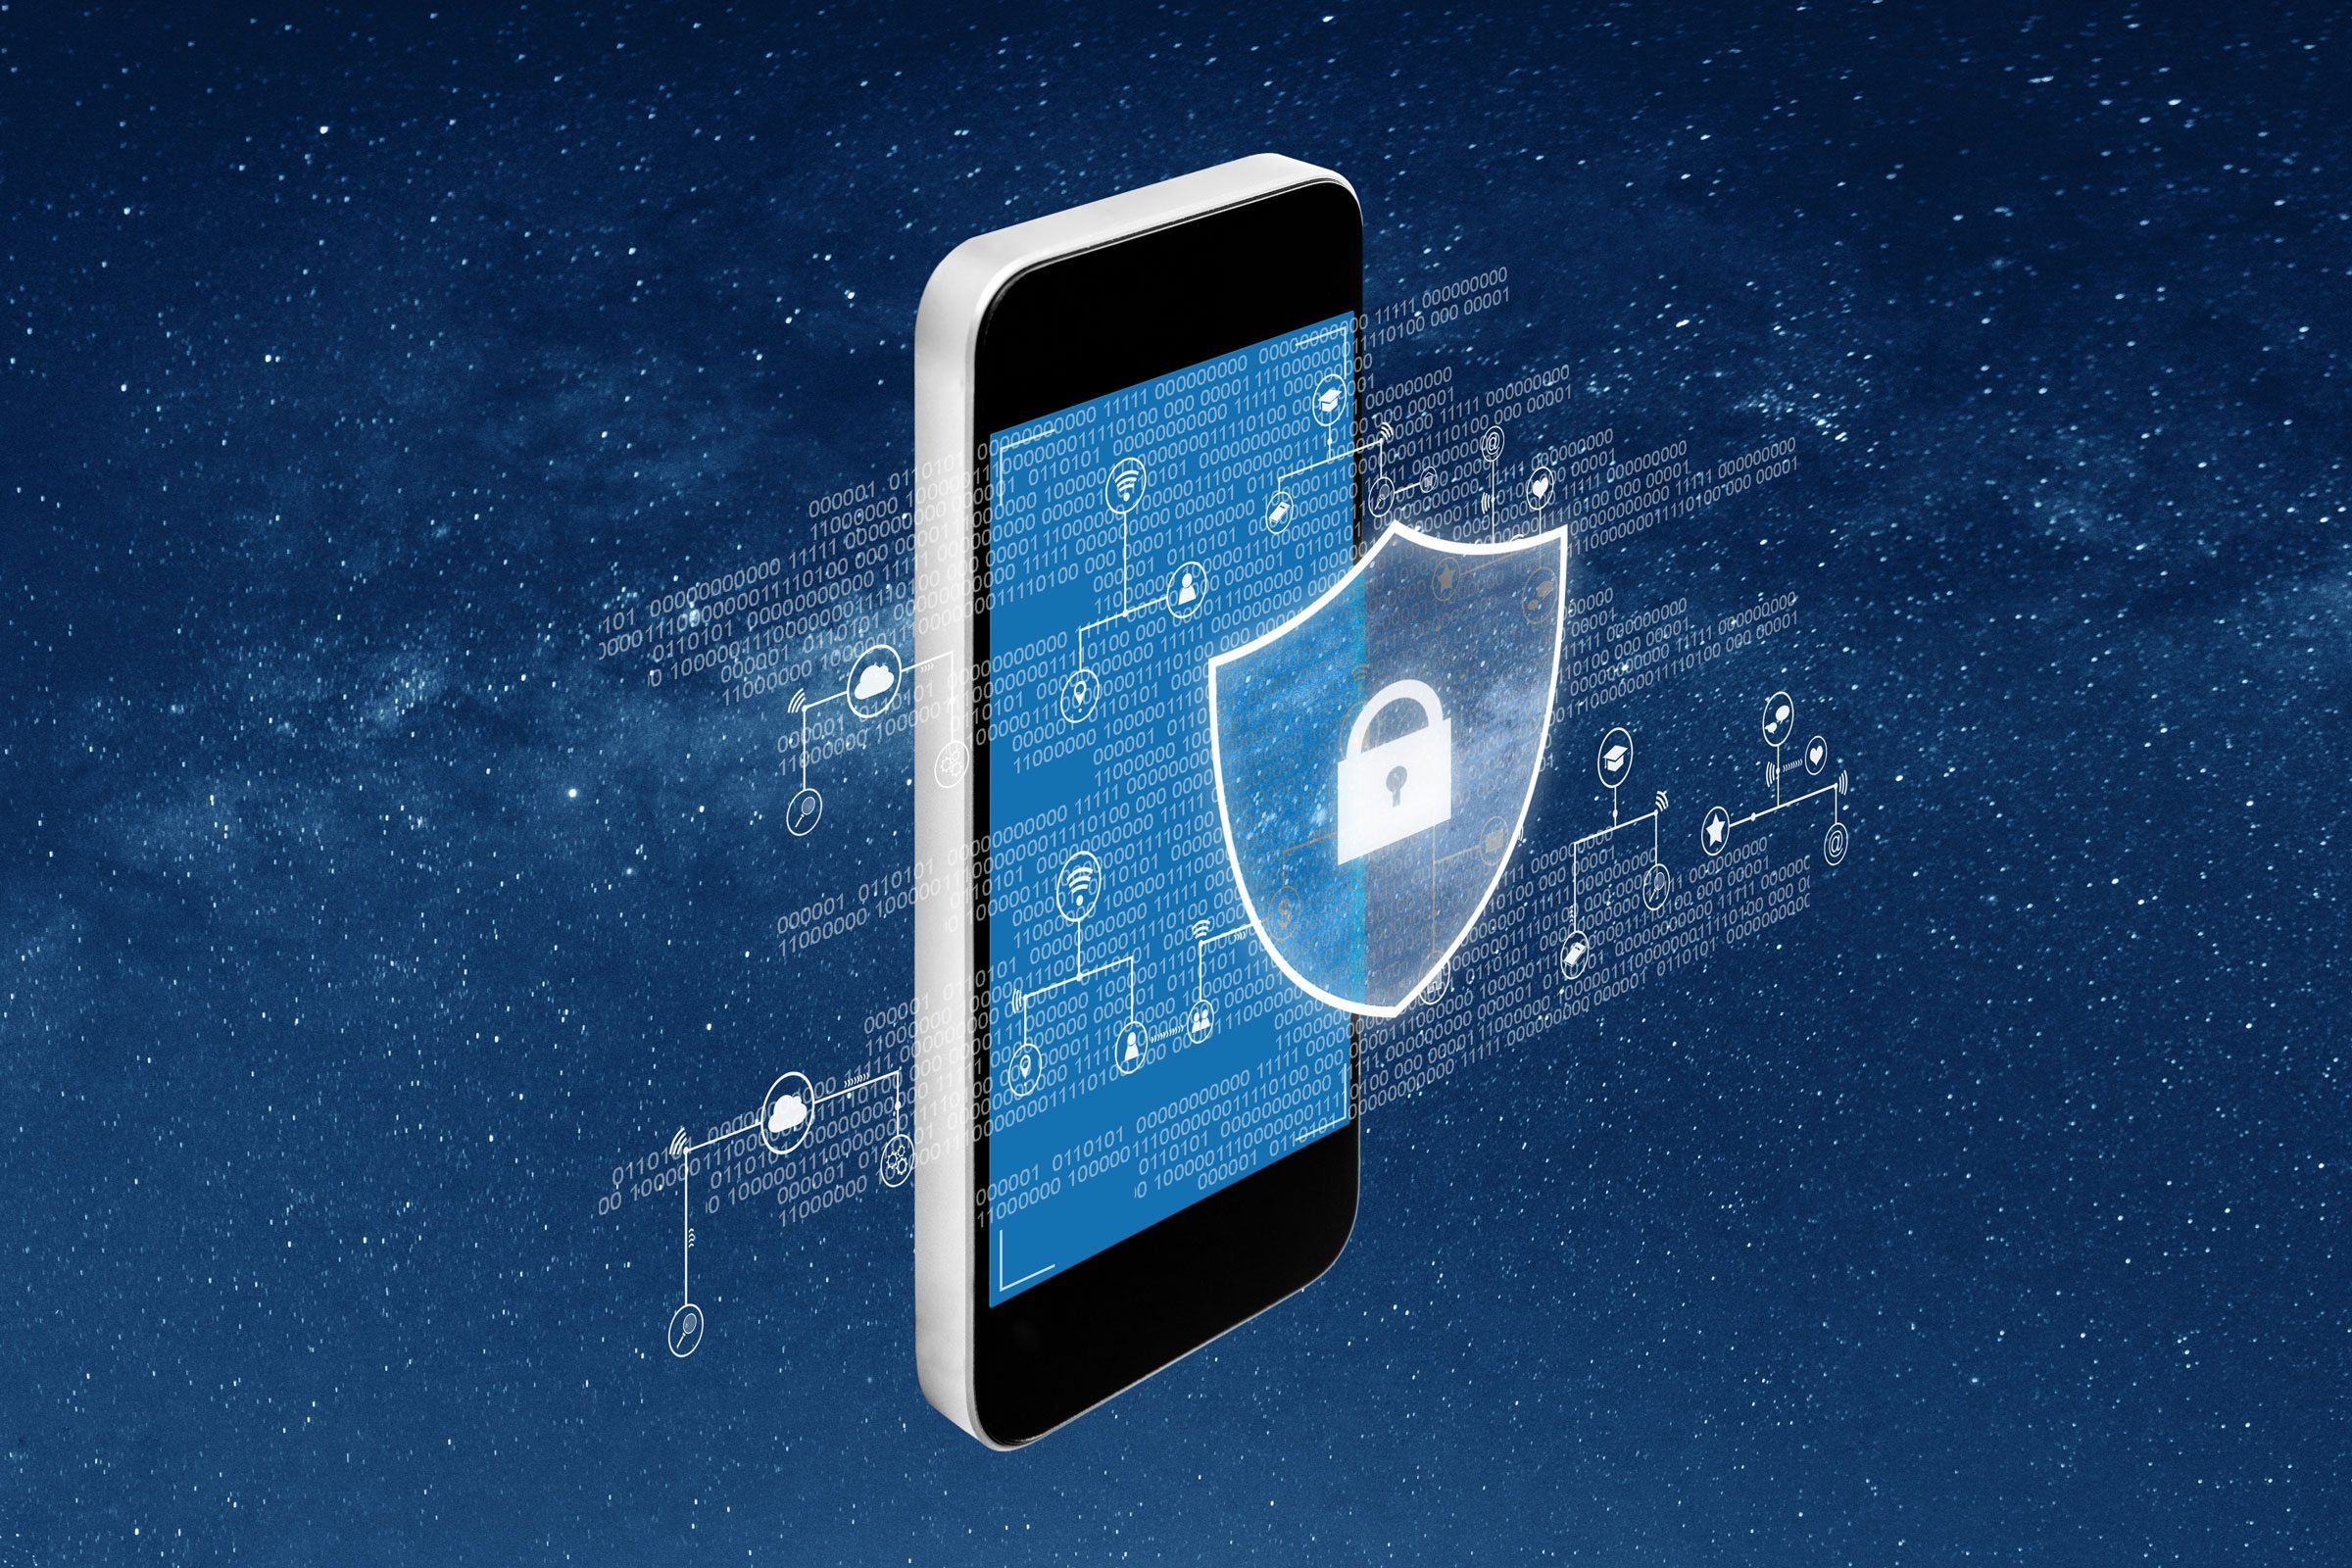 concept illustration of encrypted data across the screen of a smartphone with a shield and lock symbol